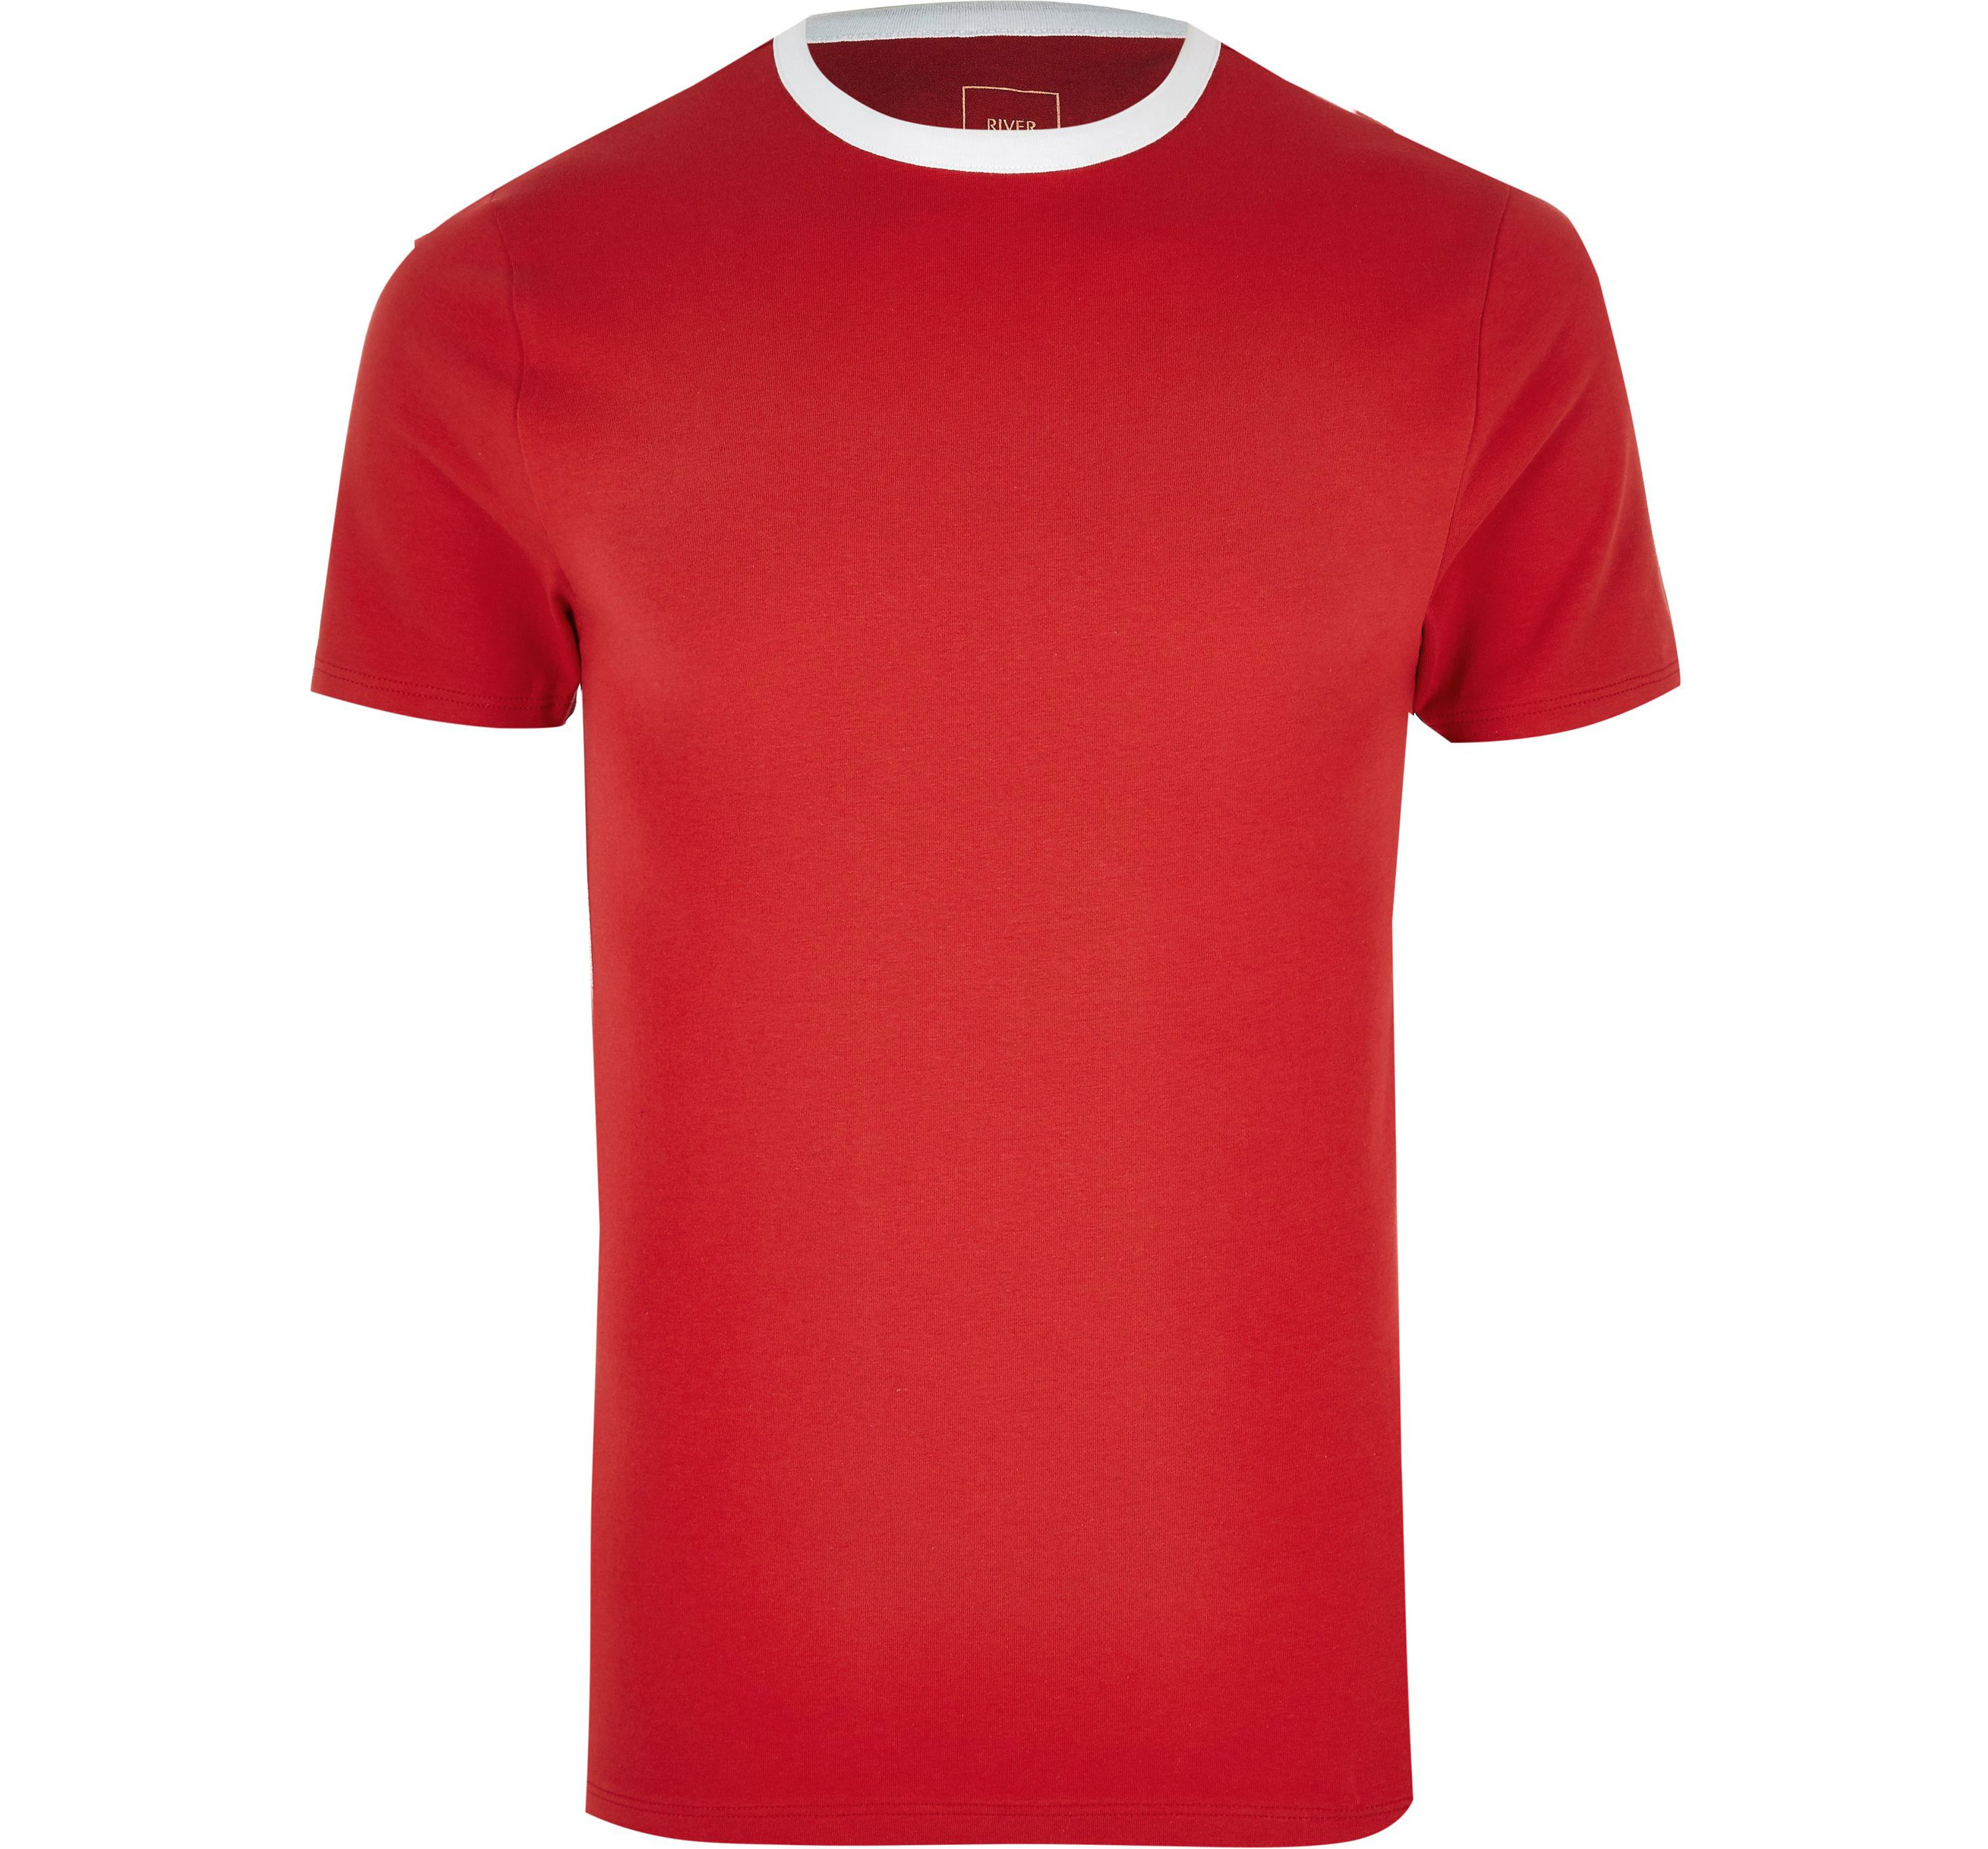 River Island Mens Red ringer muscle fit T-shirt